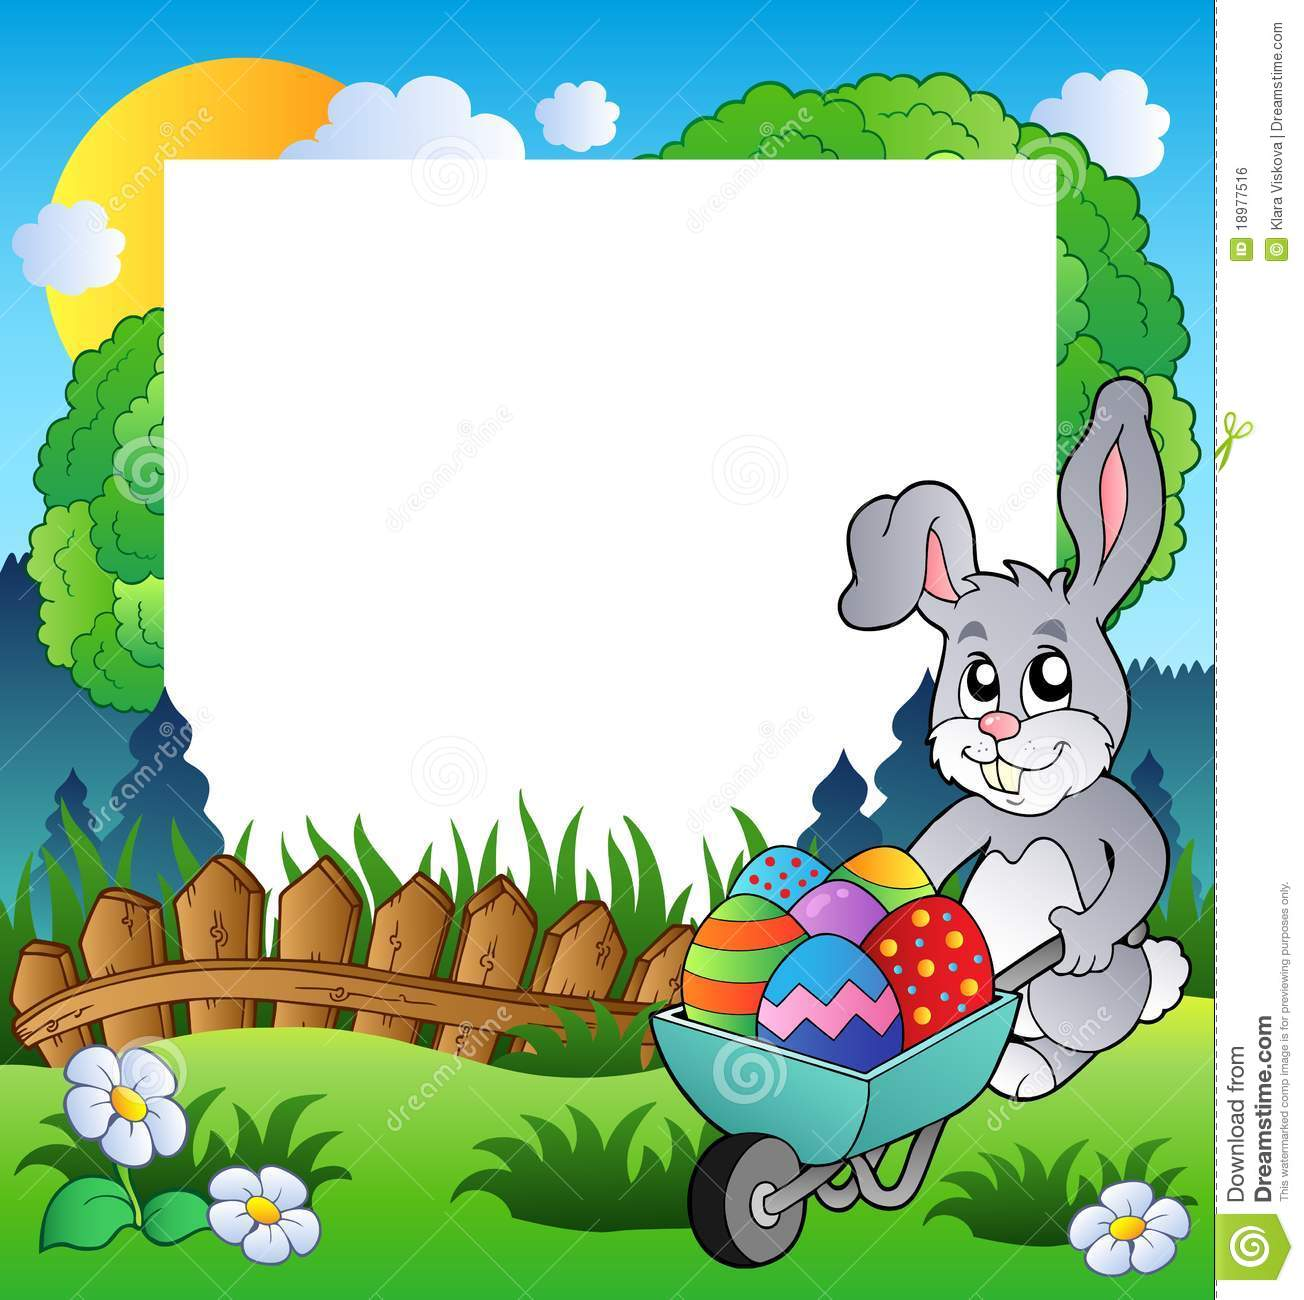 Easter Frame With Bunny And Barrow Stock Vector - Illustration of ...